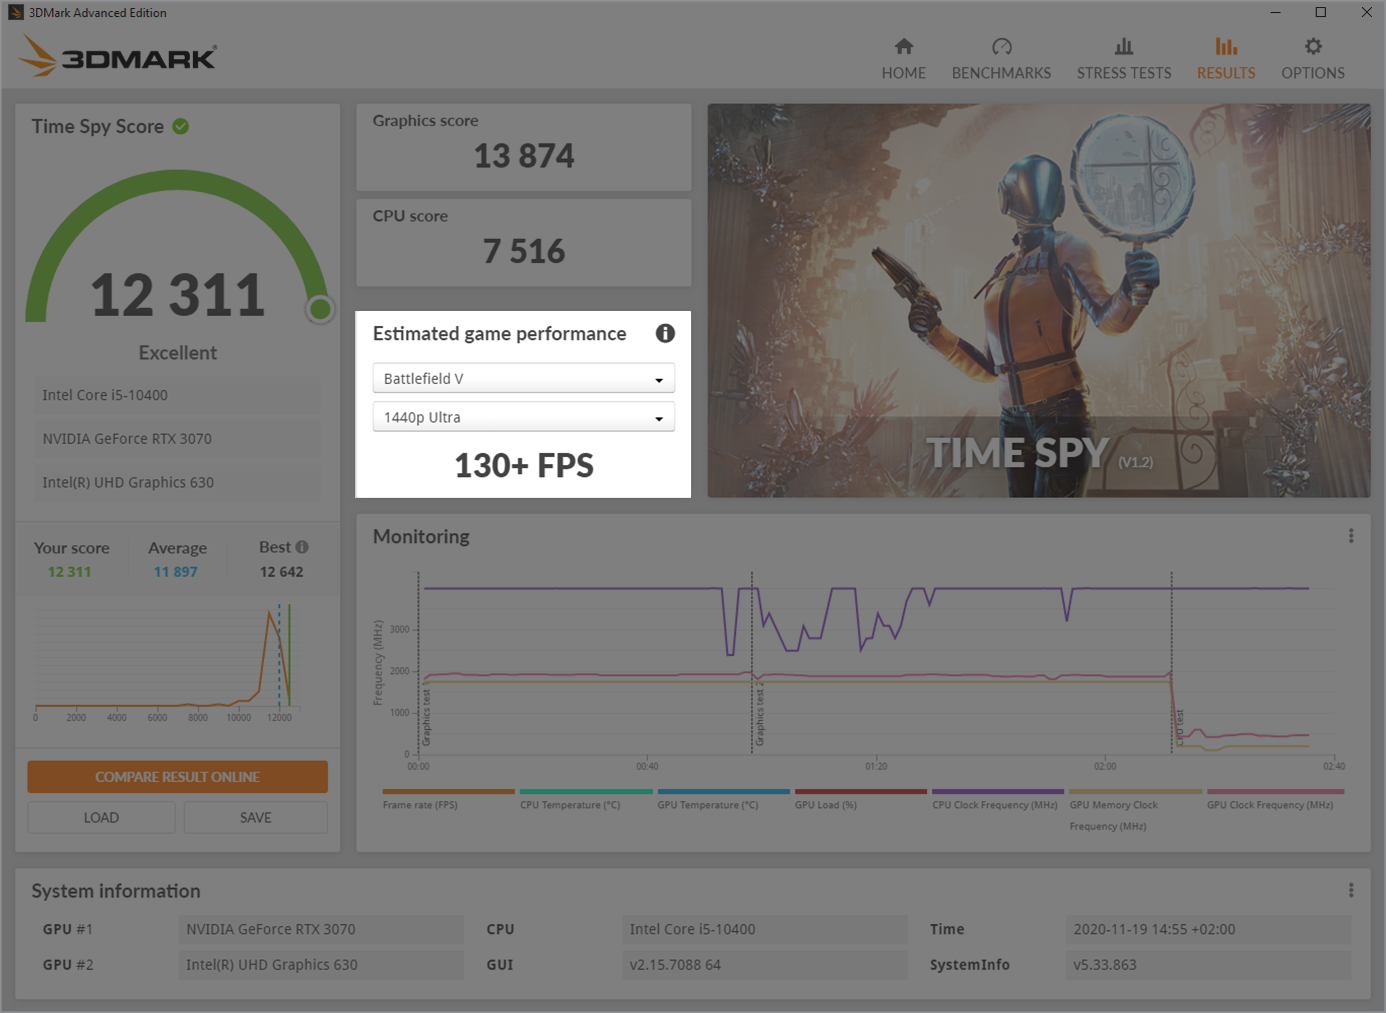 3DMark estimated game performance